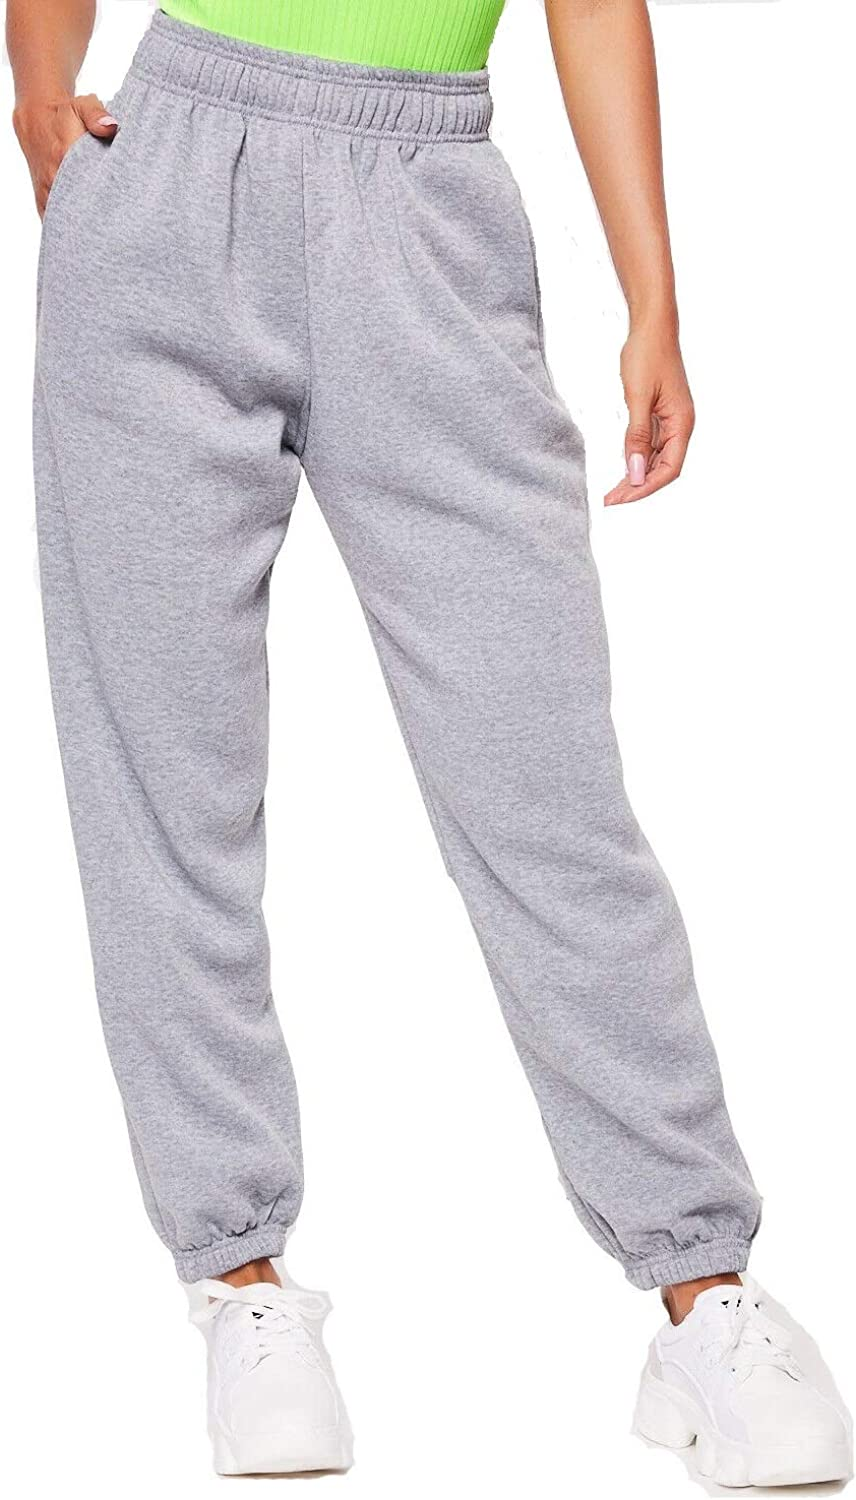 Miss Boho Chic Women Fleece Casual Oversized Jogging Joggers Ladies Cuffed Tracksuit Bottoms